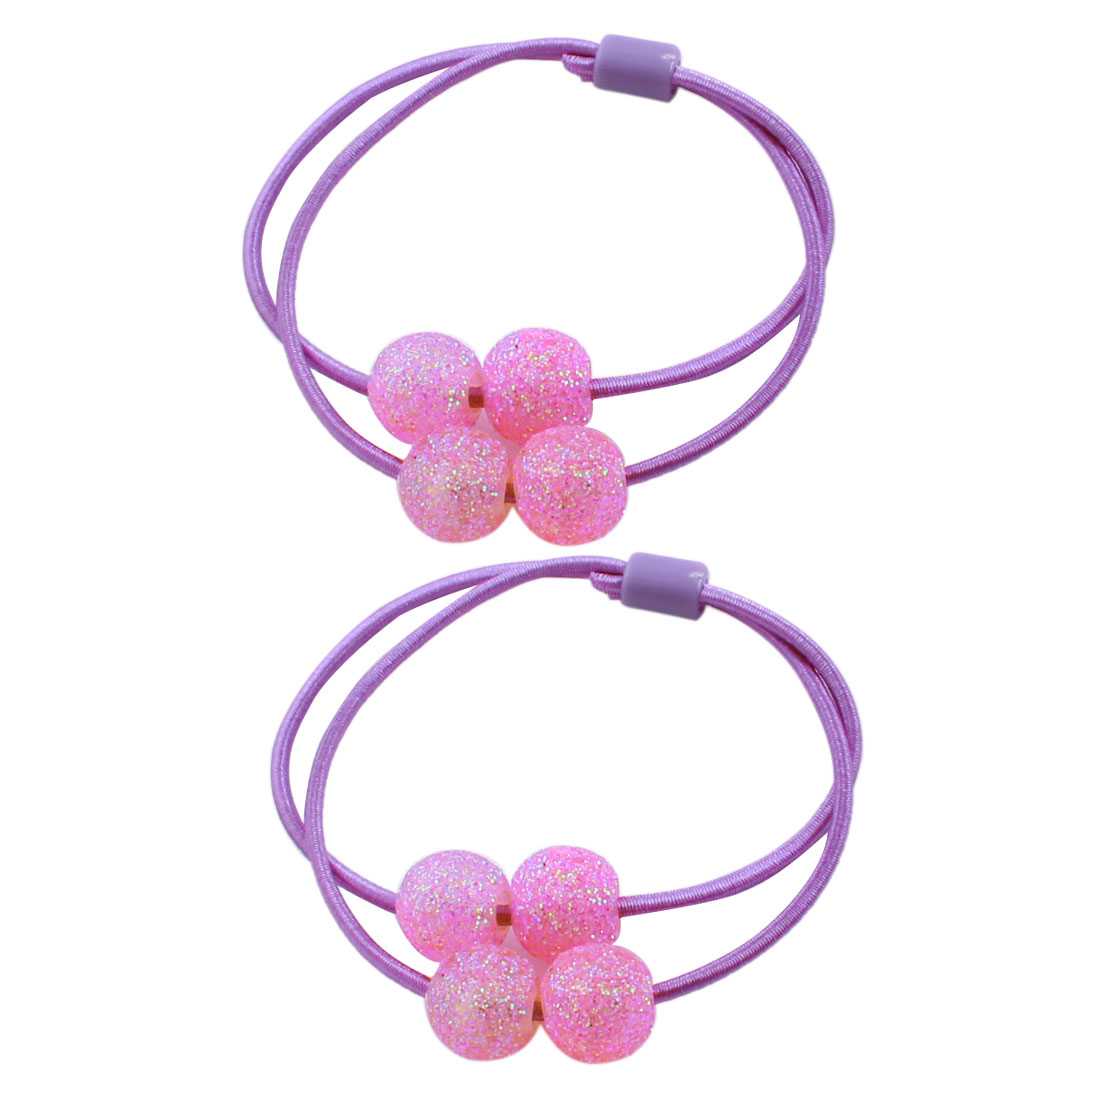 Pink Glittery Round Plastic Beads Accent Stretchy Hair Bands Ponytail Holder 2 Pieces